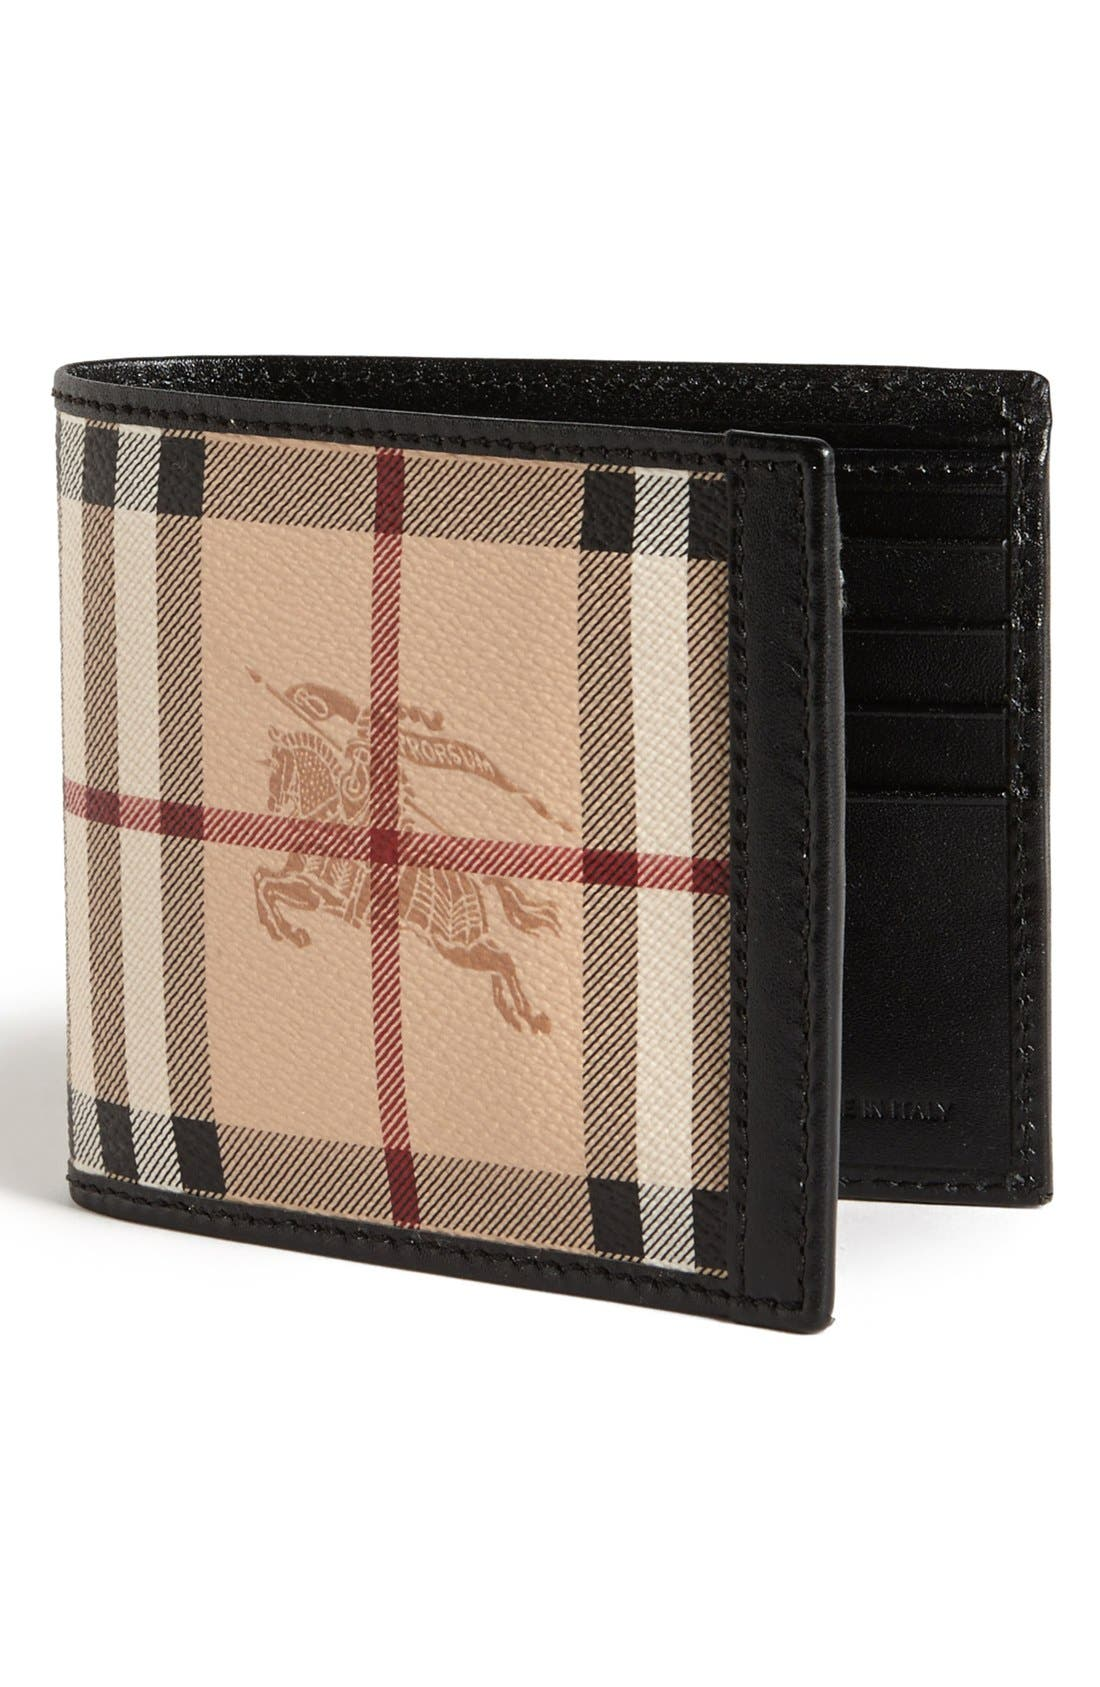 Main Image - Burberry Haymarket Check Print Billfold Wallet